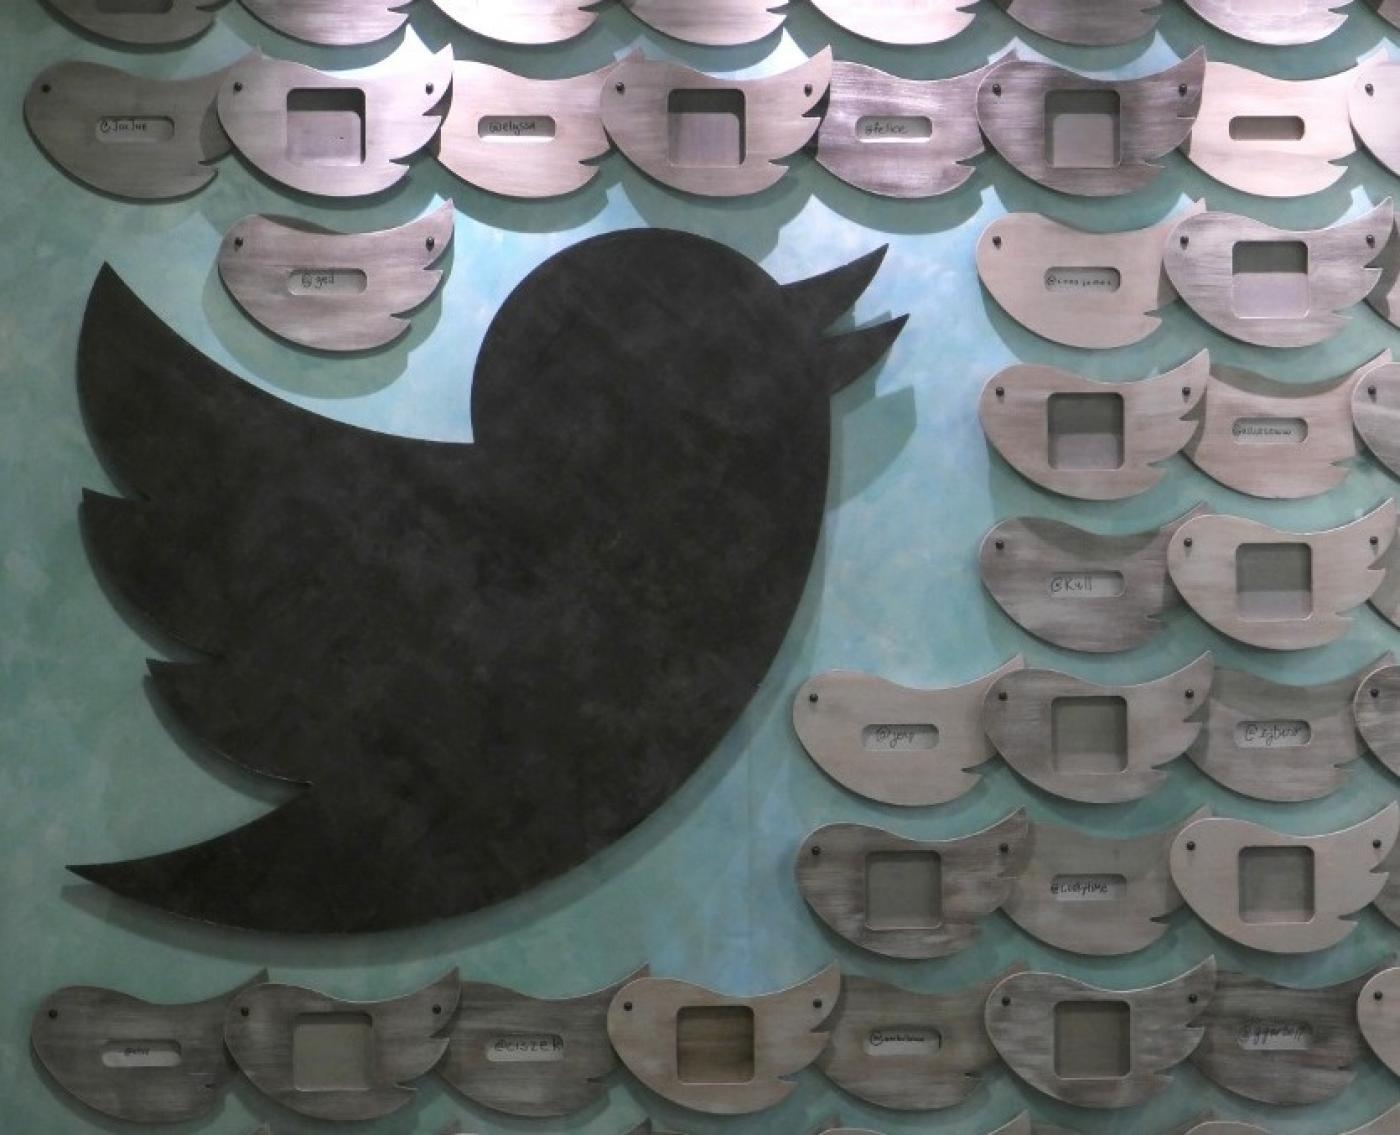 United States accuses former Twitter employees of spying for Saudi Arabia